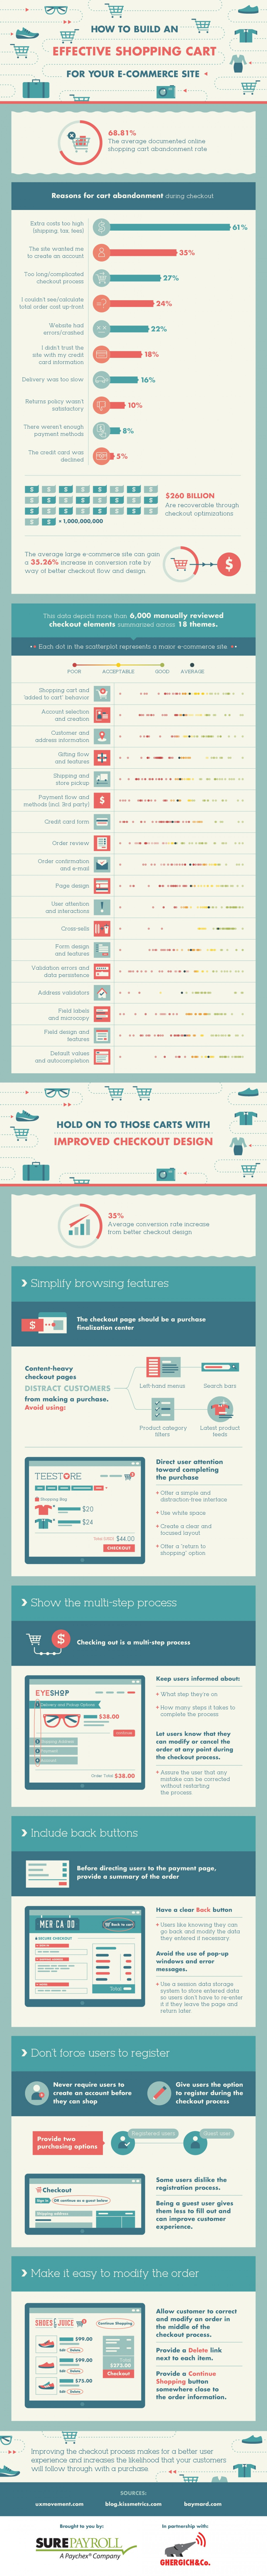 How to Build an Effective Shopping Cart for Your eCommerce Site Infographic